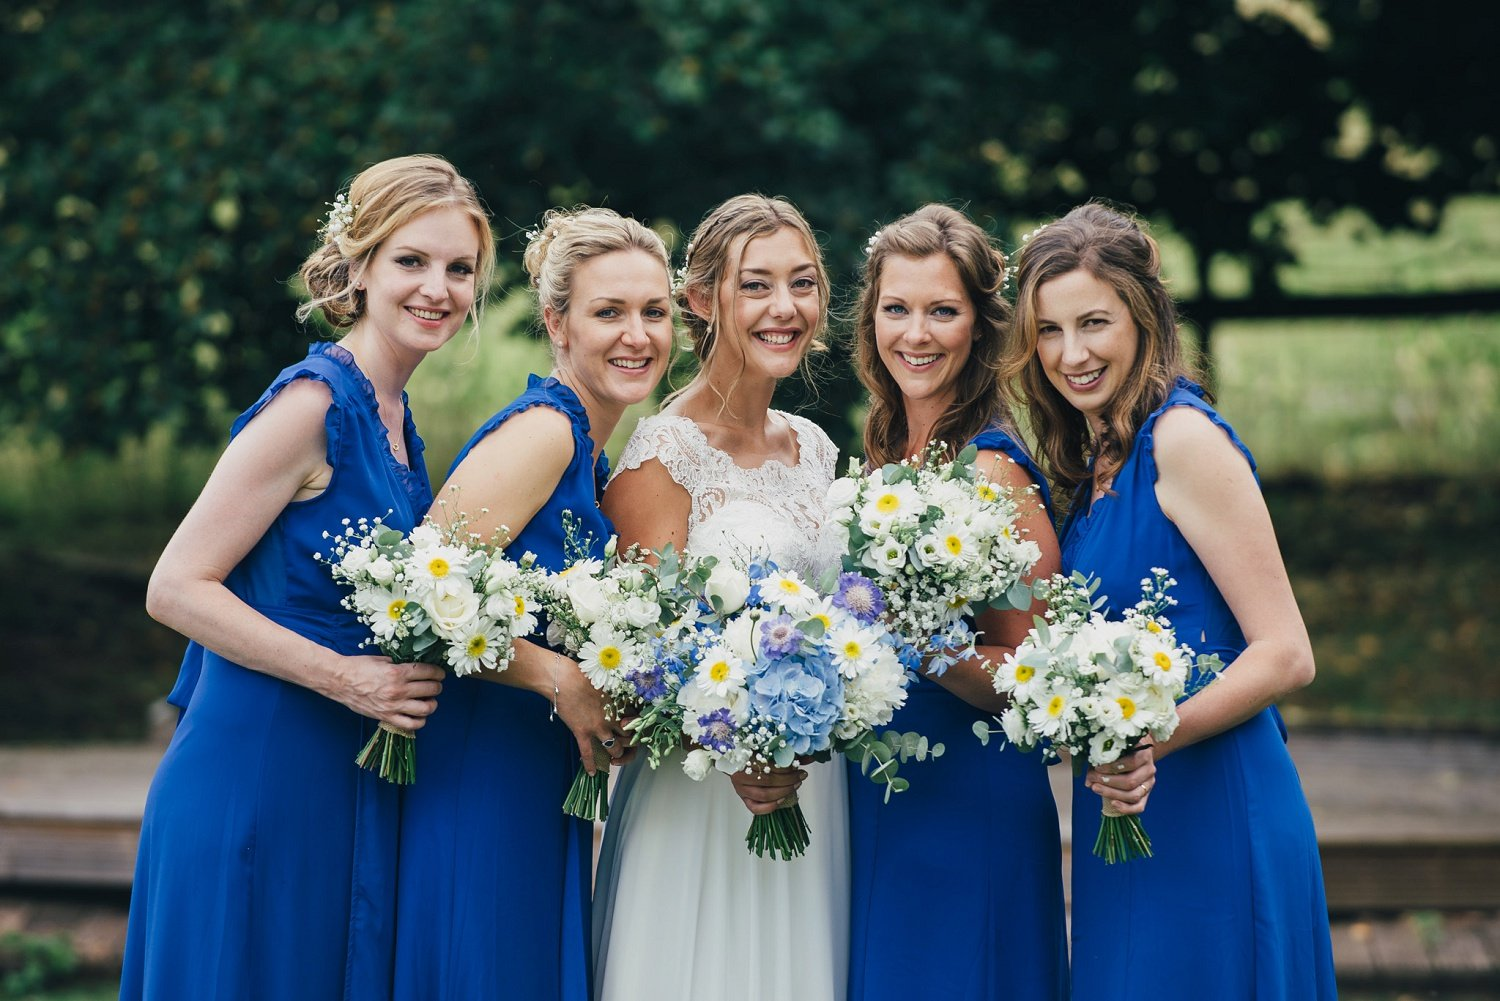 Bride and bridesmaids feeling great after having professional makeup done at the wedding